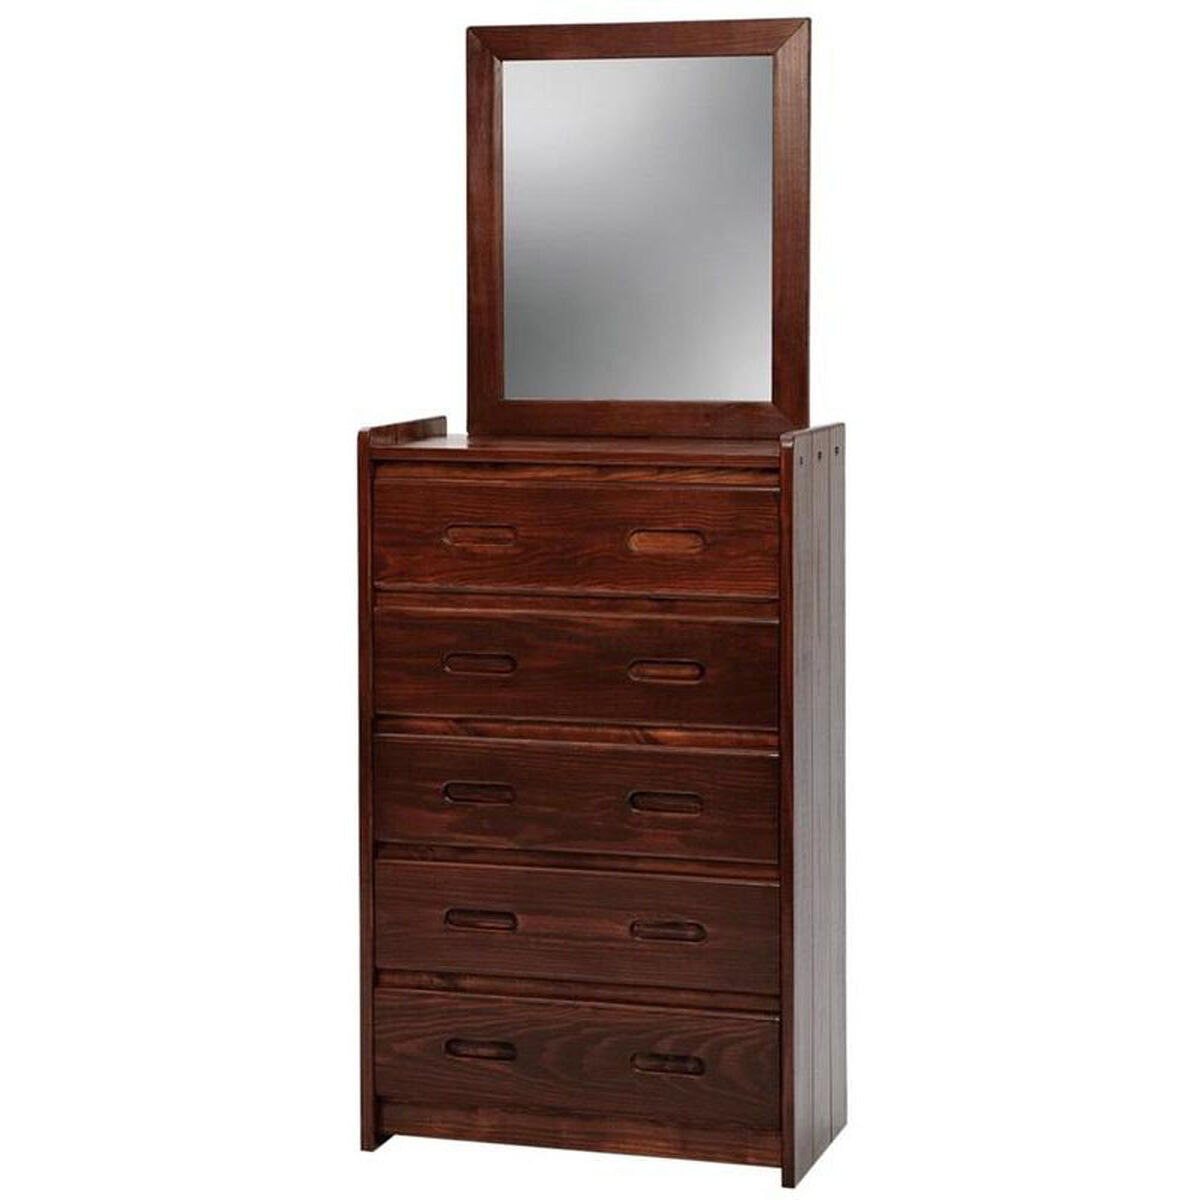 Chelsea home furniture pl 35 chel for Furniture 35